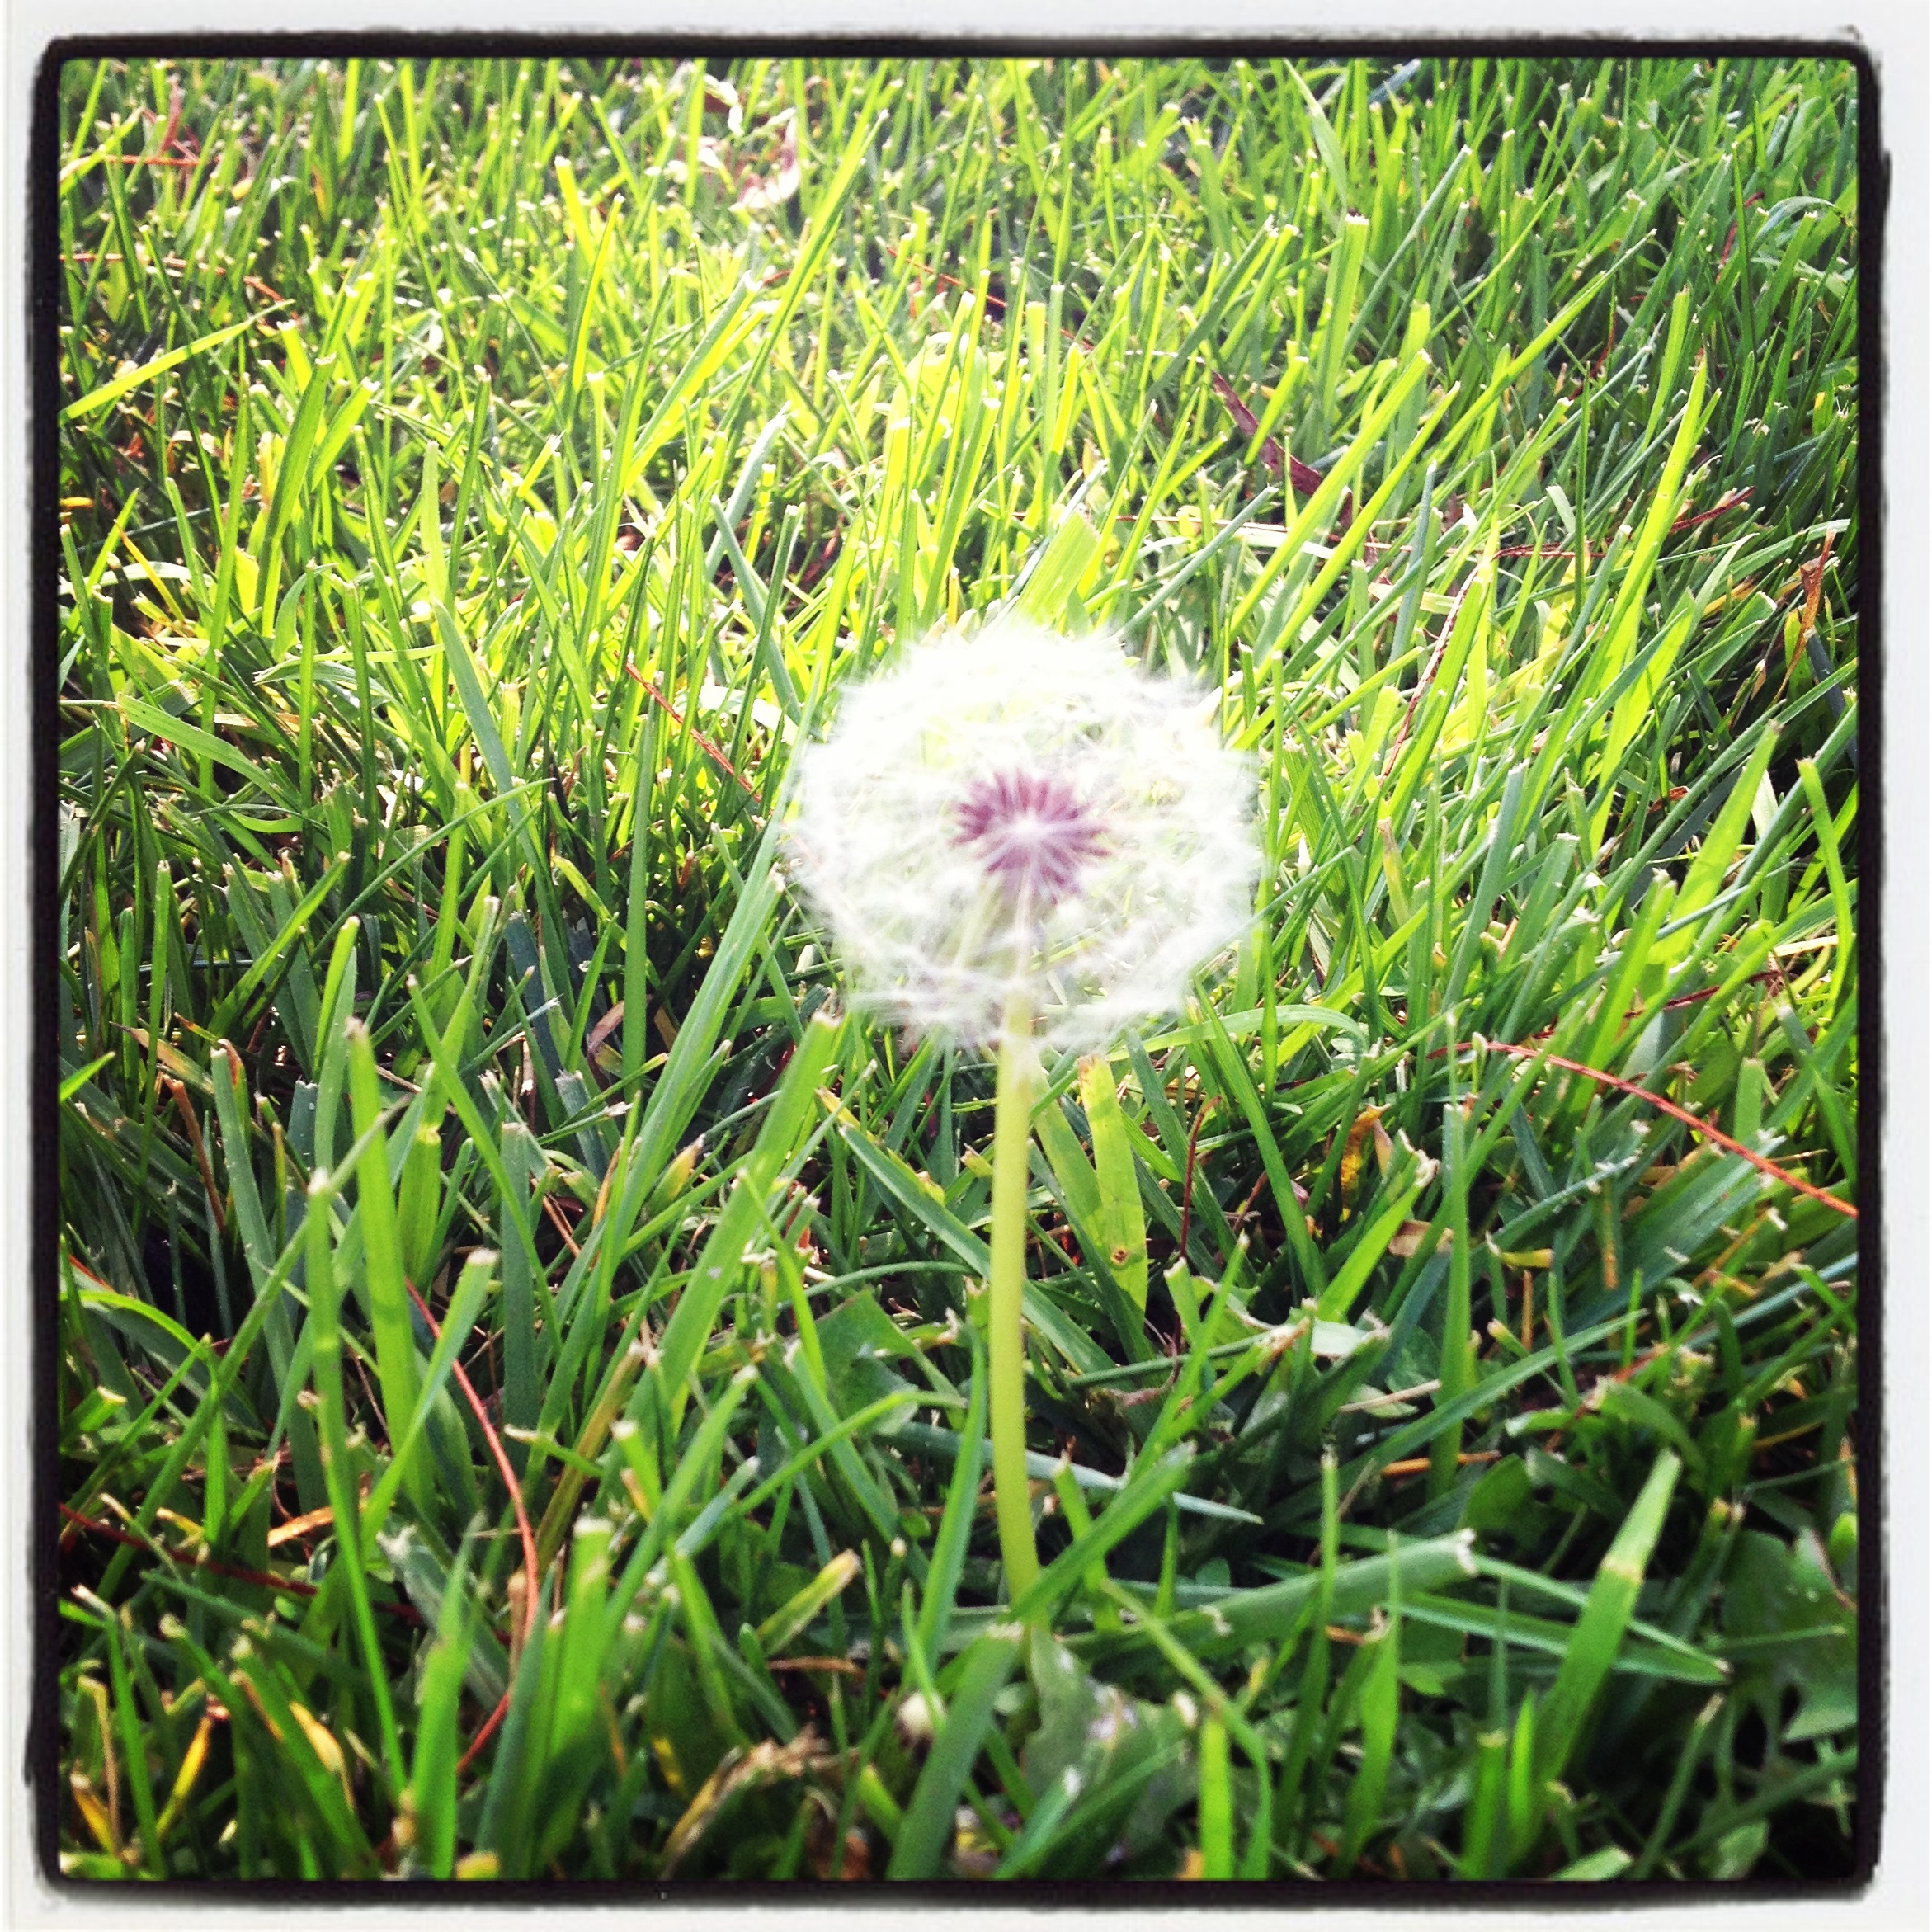 Instagram of the Week: The Beauty of the Dandelion